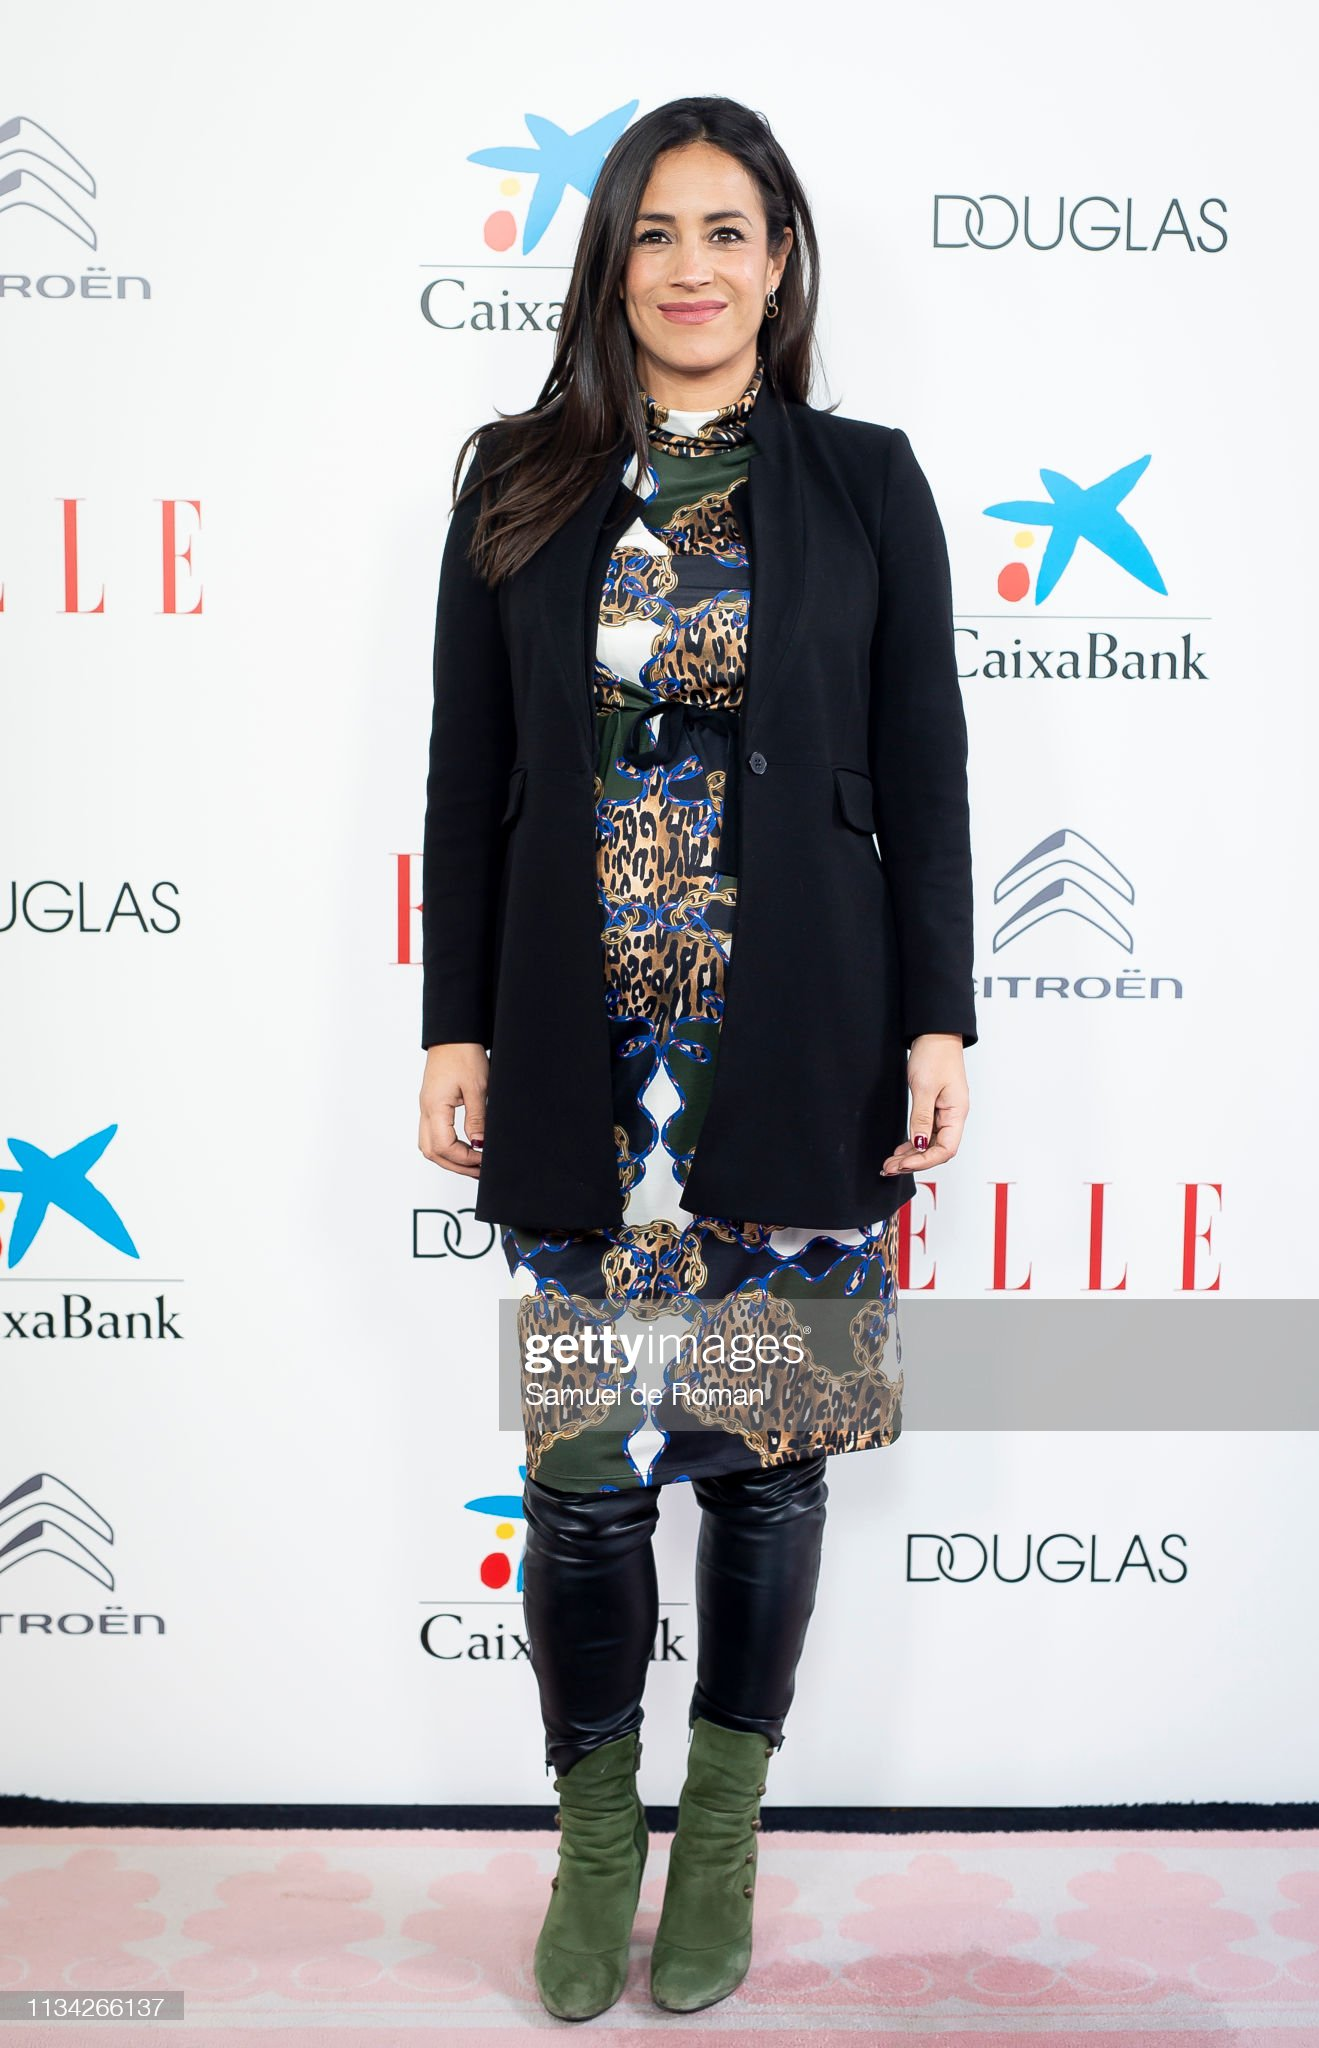 ¿Cuánto mide Begoña Villacís? - Altura Begoa-villacs-attends-elle-womens-day-photocall-on-march-07-2019-in-picture-id1134266137?s=2048x2048